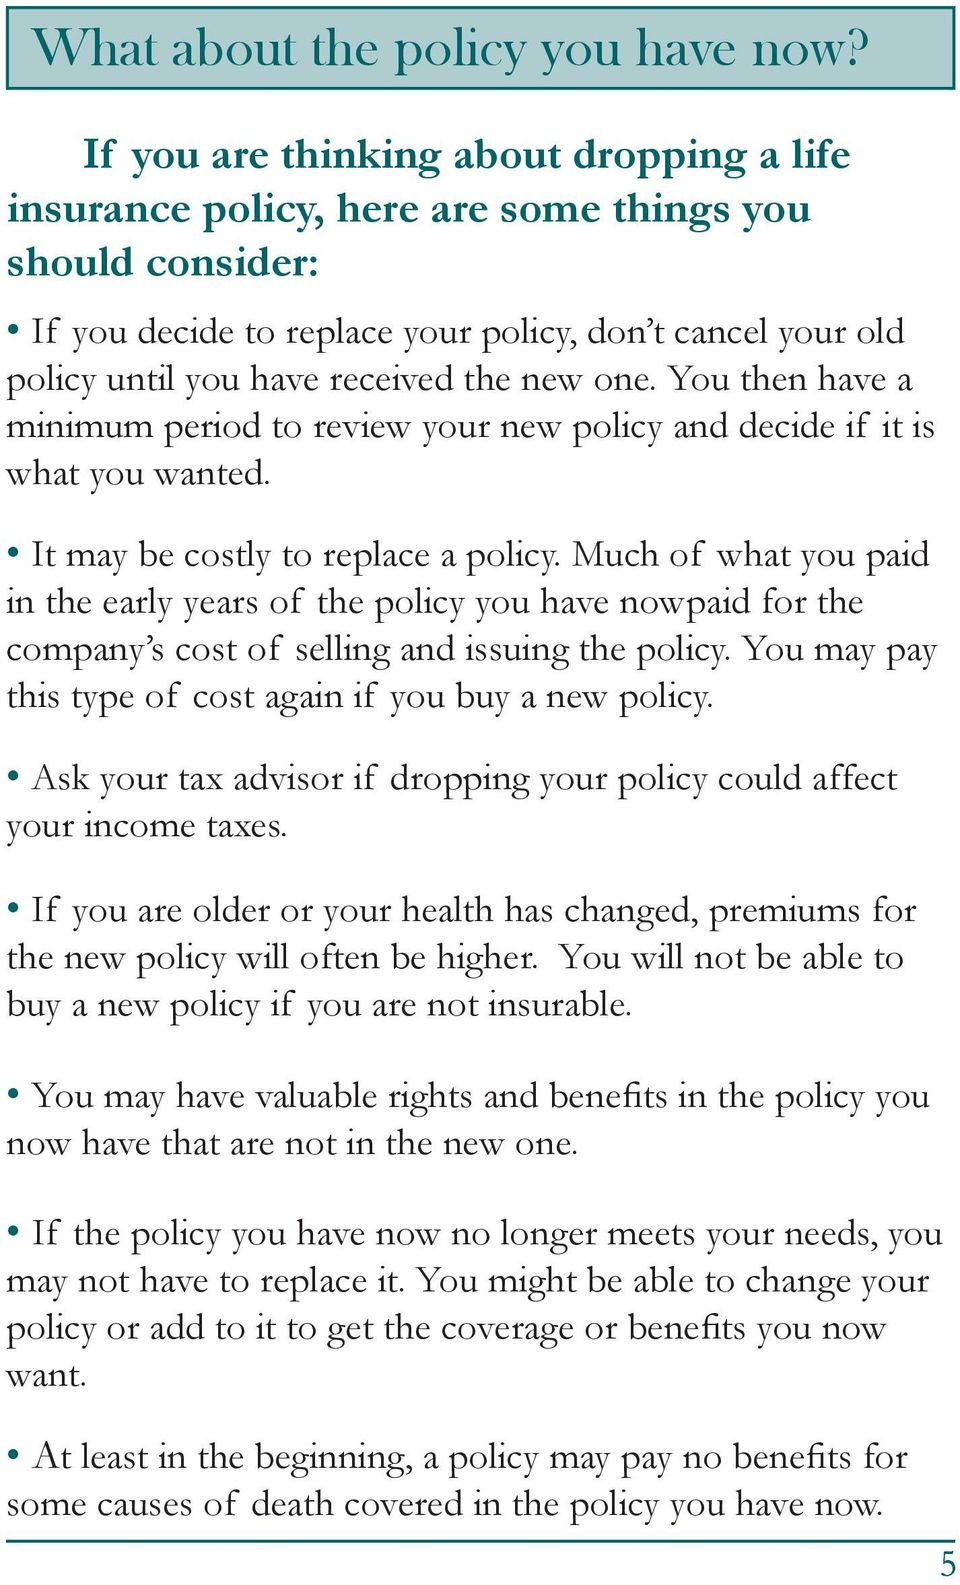 new one. You then have a minimum period to review your new policy and decide if it is what you wanted. It may be costly to replace a policy.